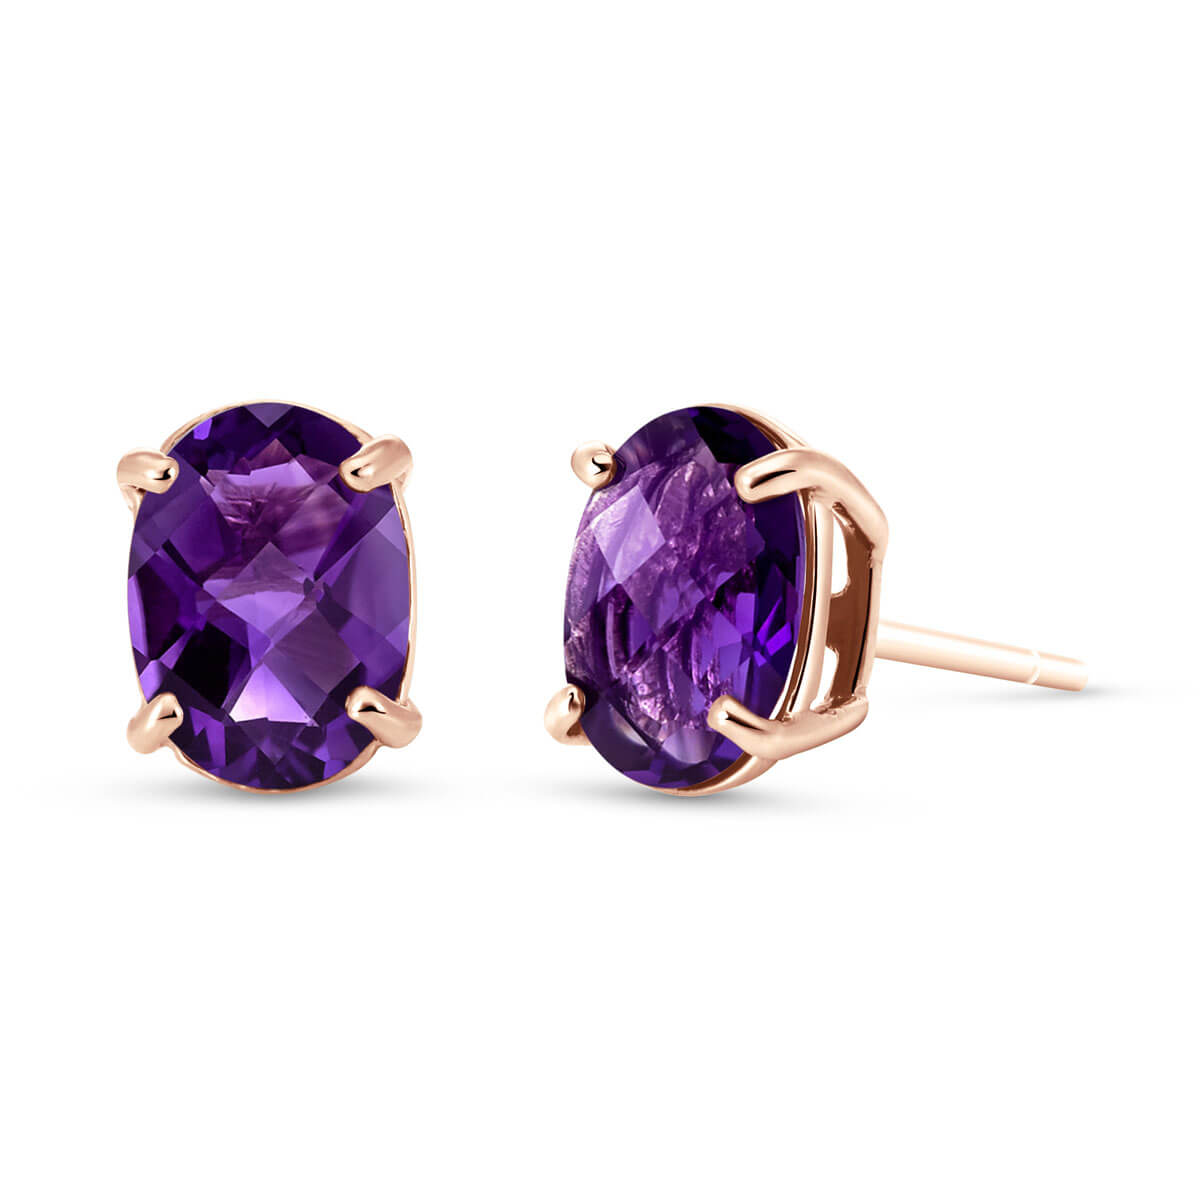 Amethyst Stud Earrings 1.8 ctw in 9ct Rose Gold